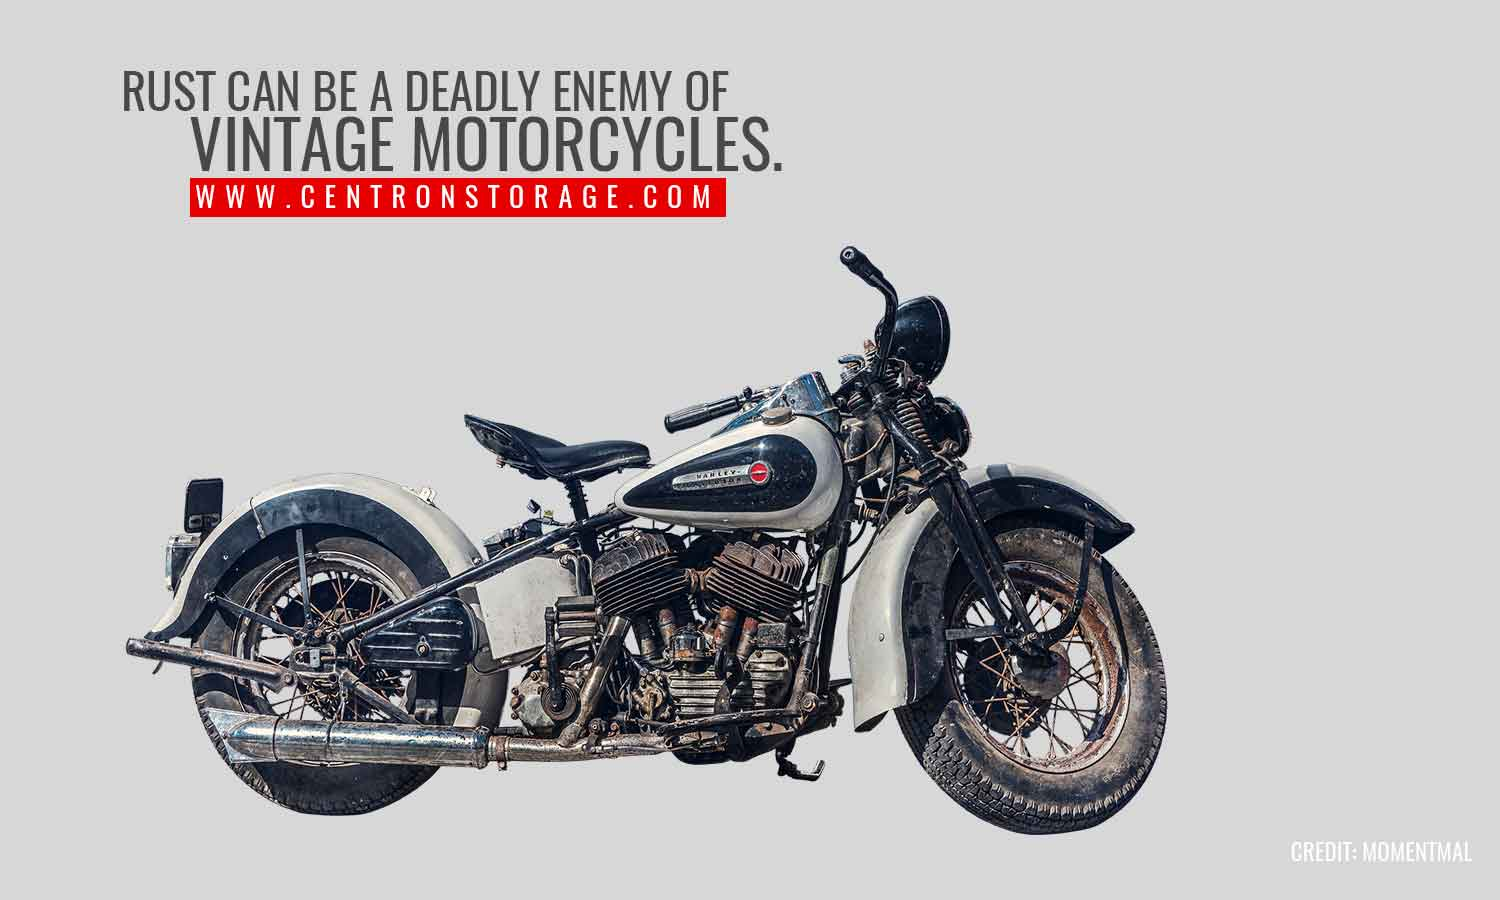 Rust can be a deadly enemy of vintage motorcycles.